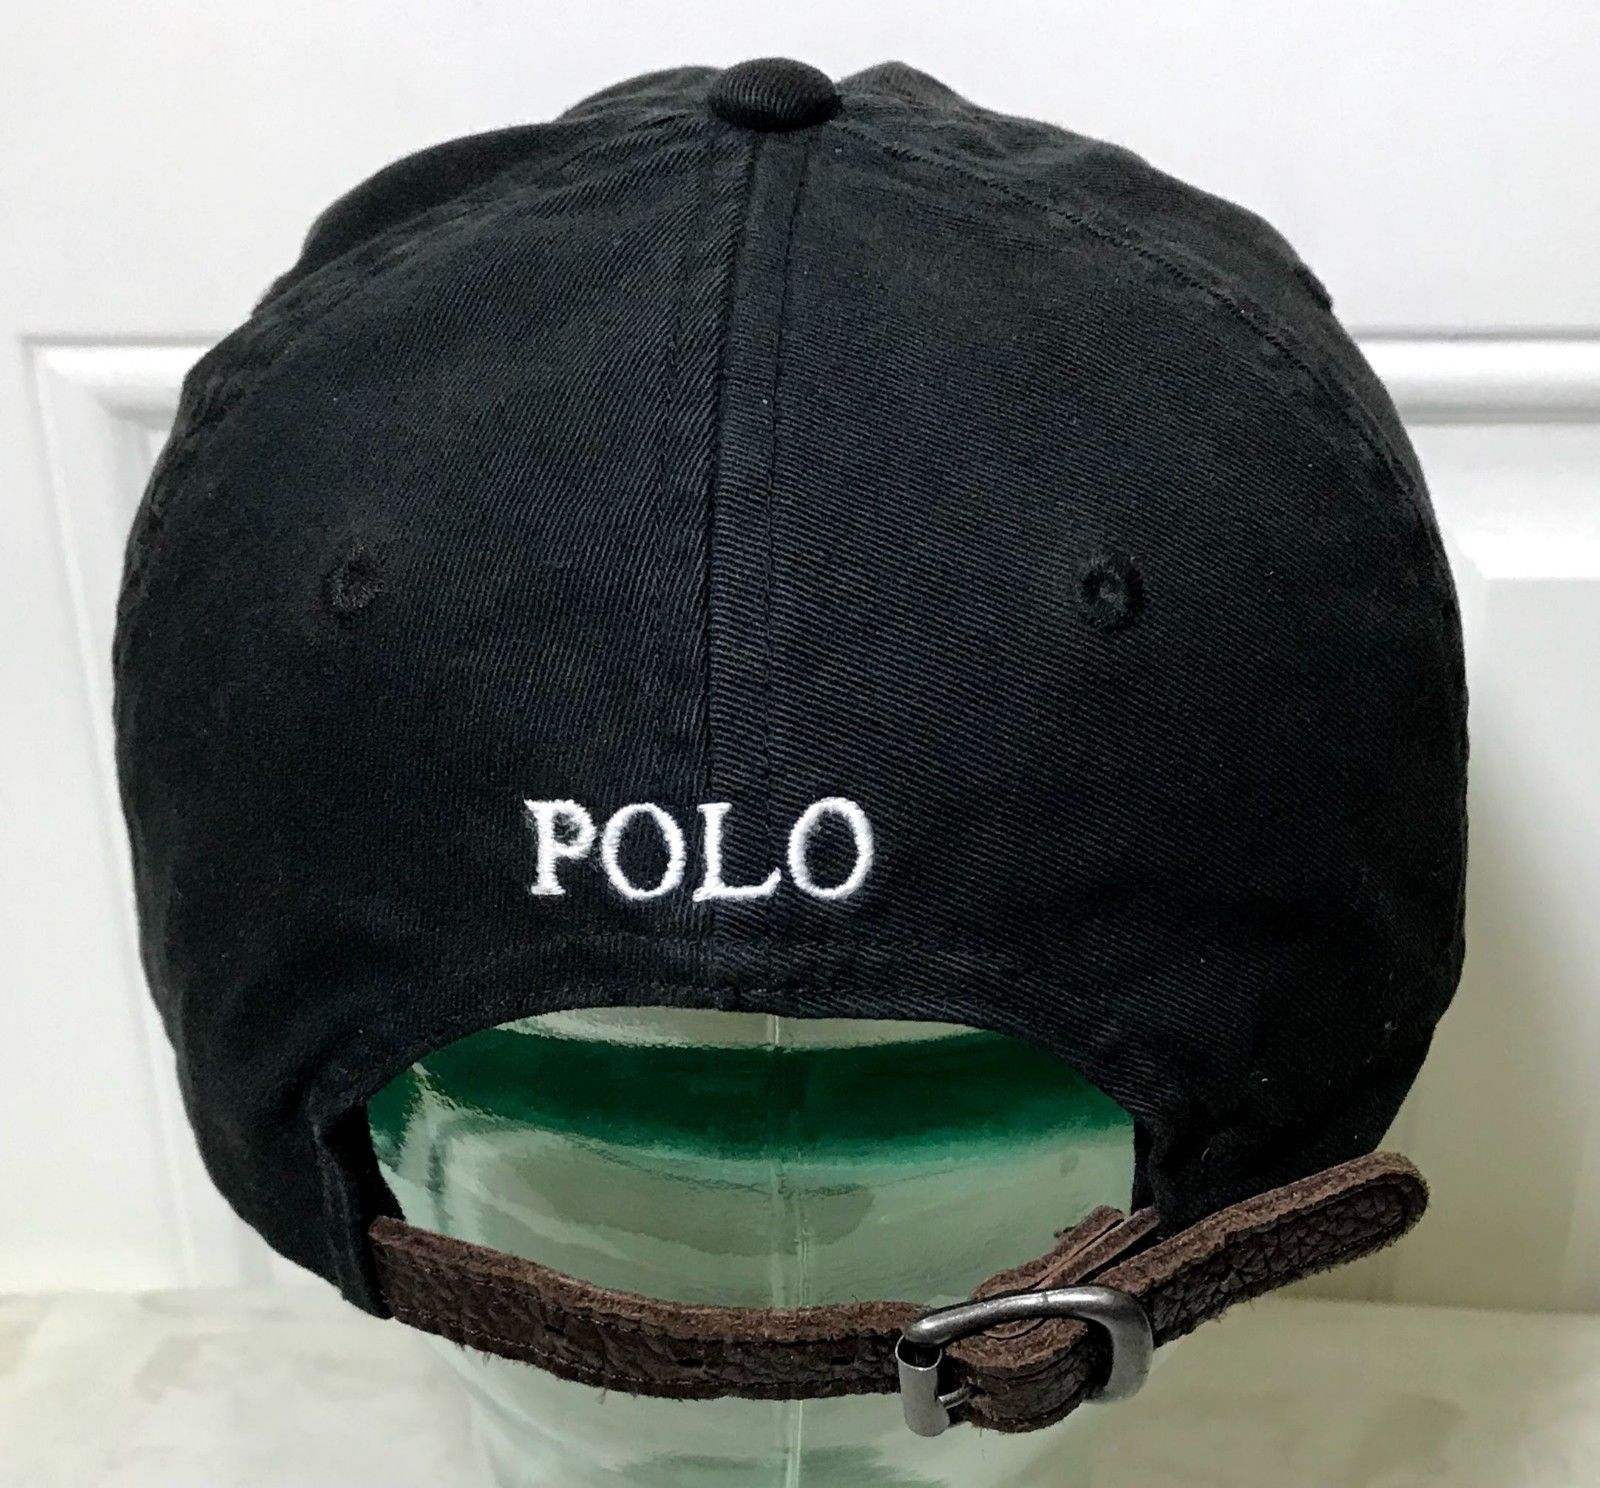 Polo Ralph Lauren Hat Leather Strap Pony Black Vintage 90s Dad Cap Spell  Out  54abb367bc4c